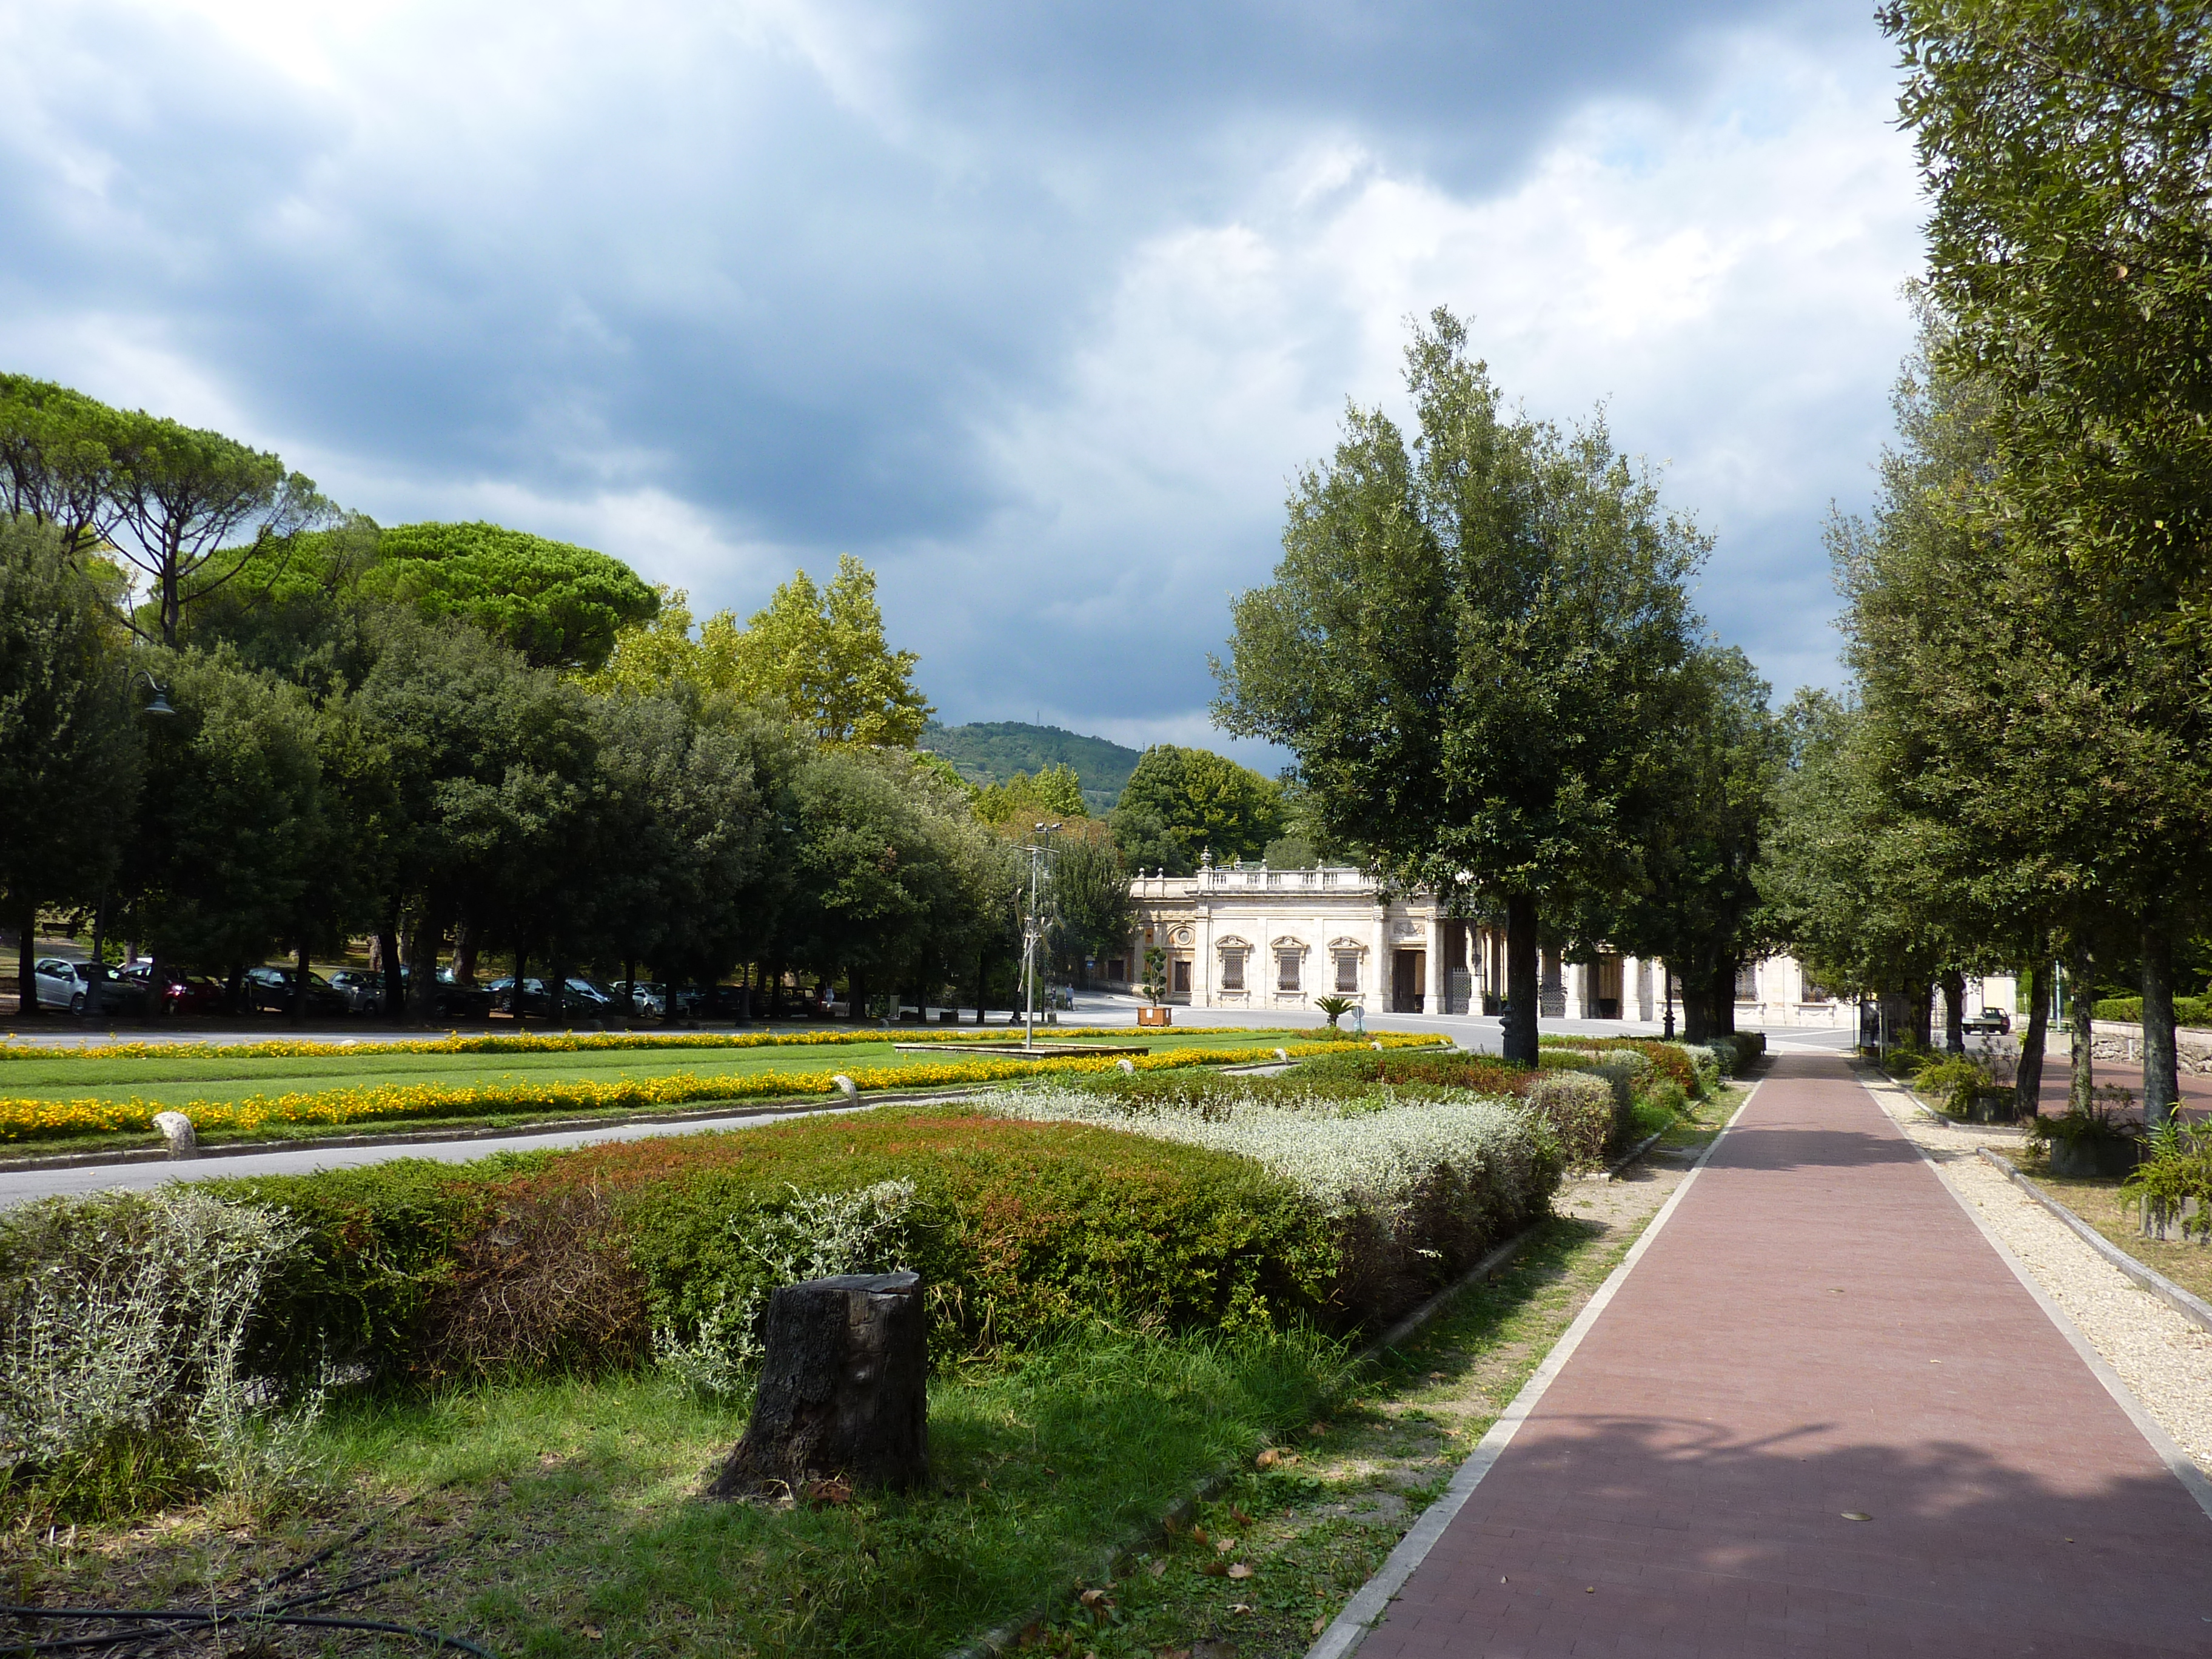 Bagno Royal Forte Dei Marmi Day Trips Itinerary Suggestions For Exploring Around Lucca